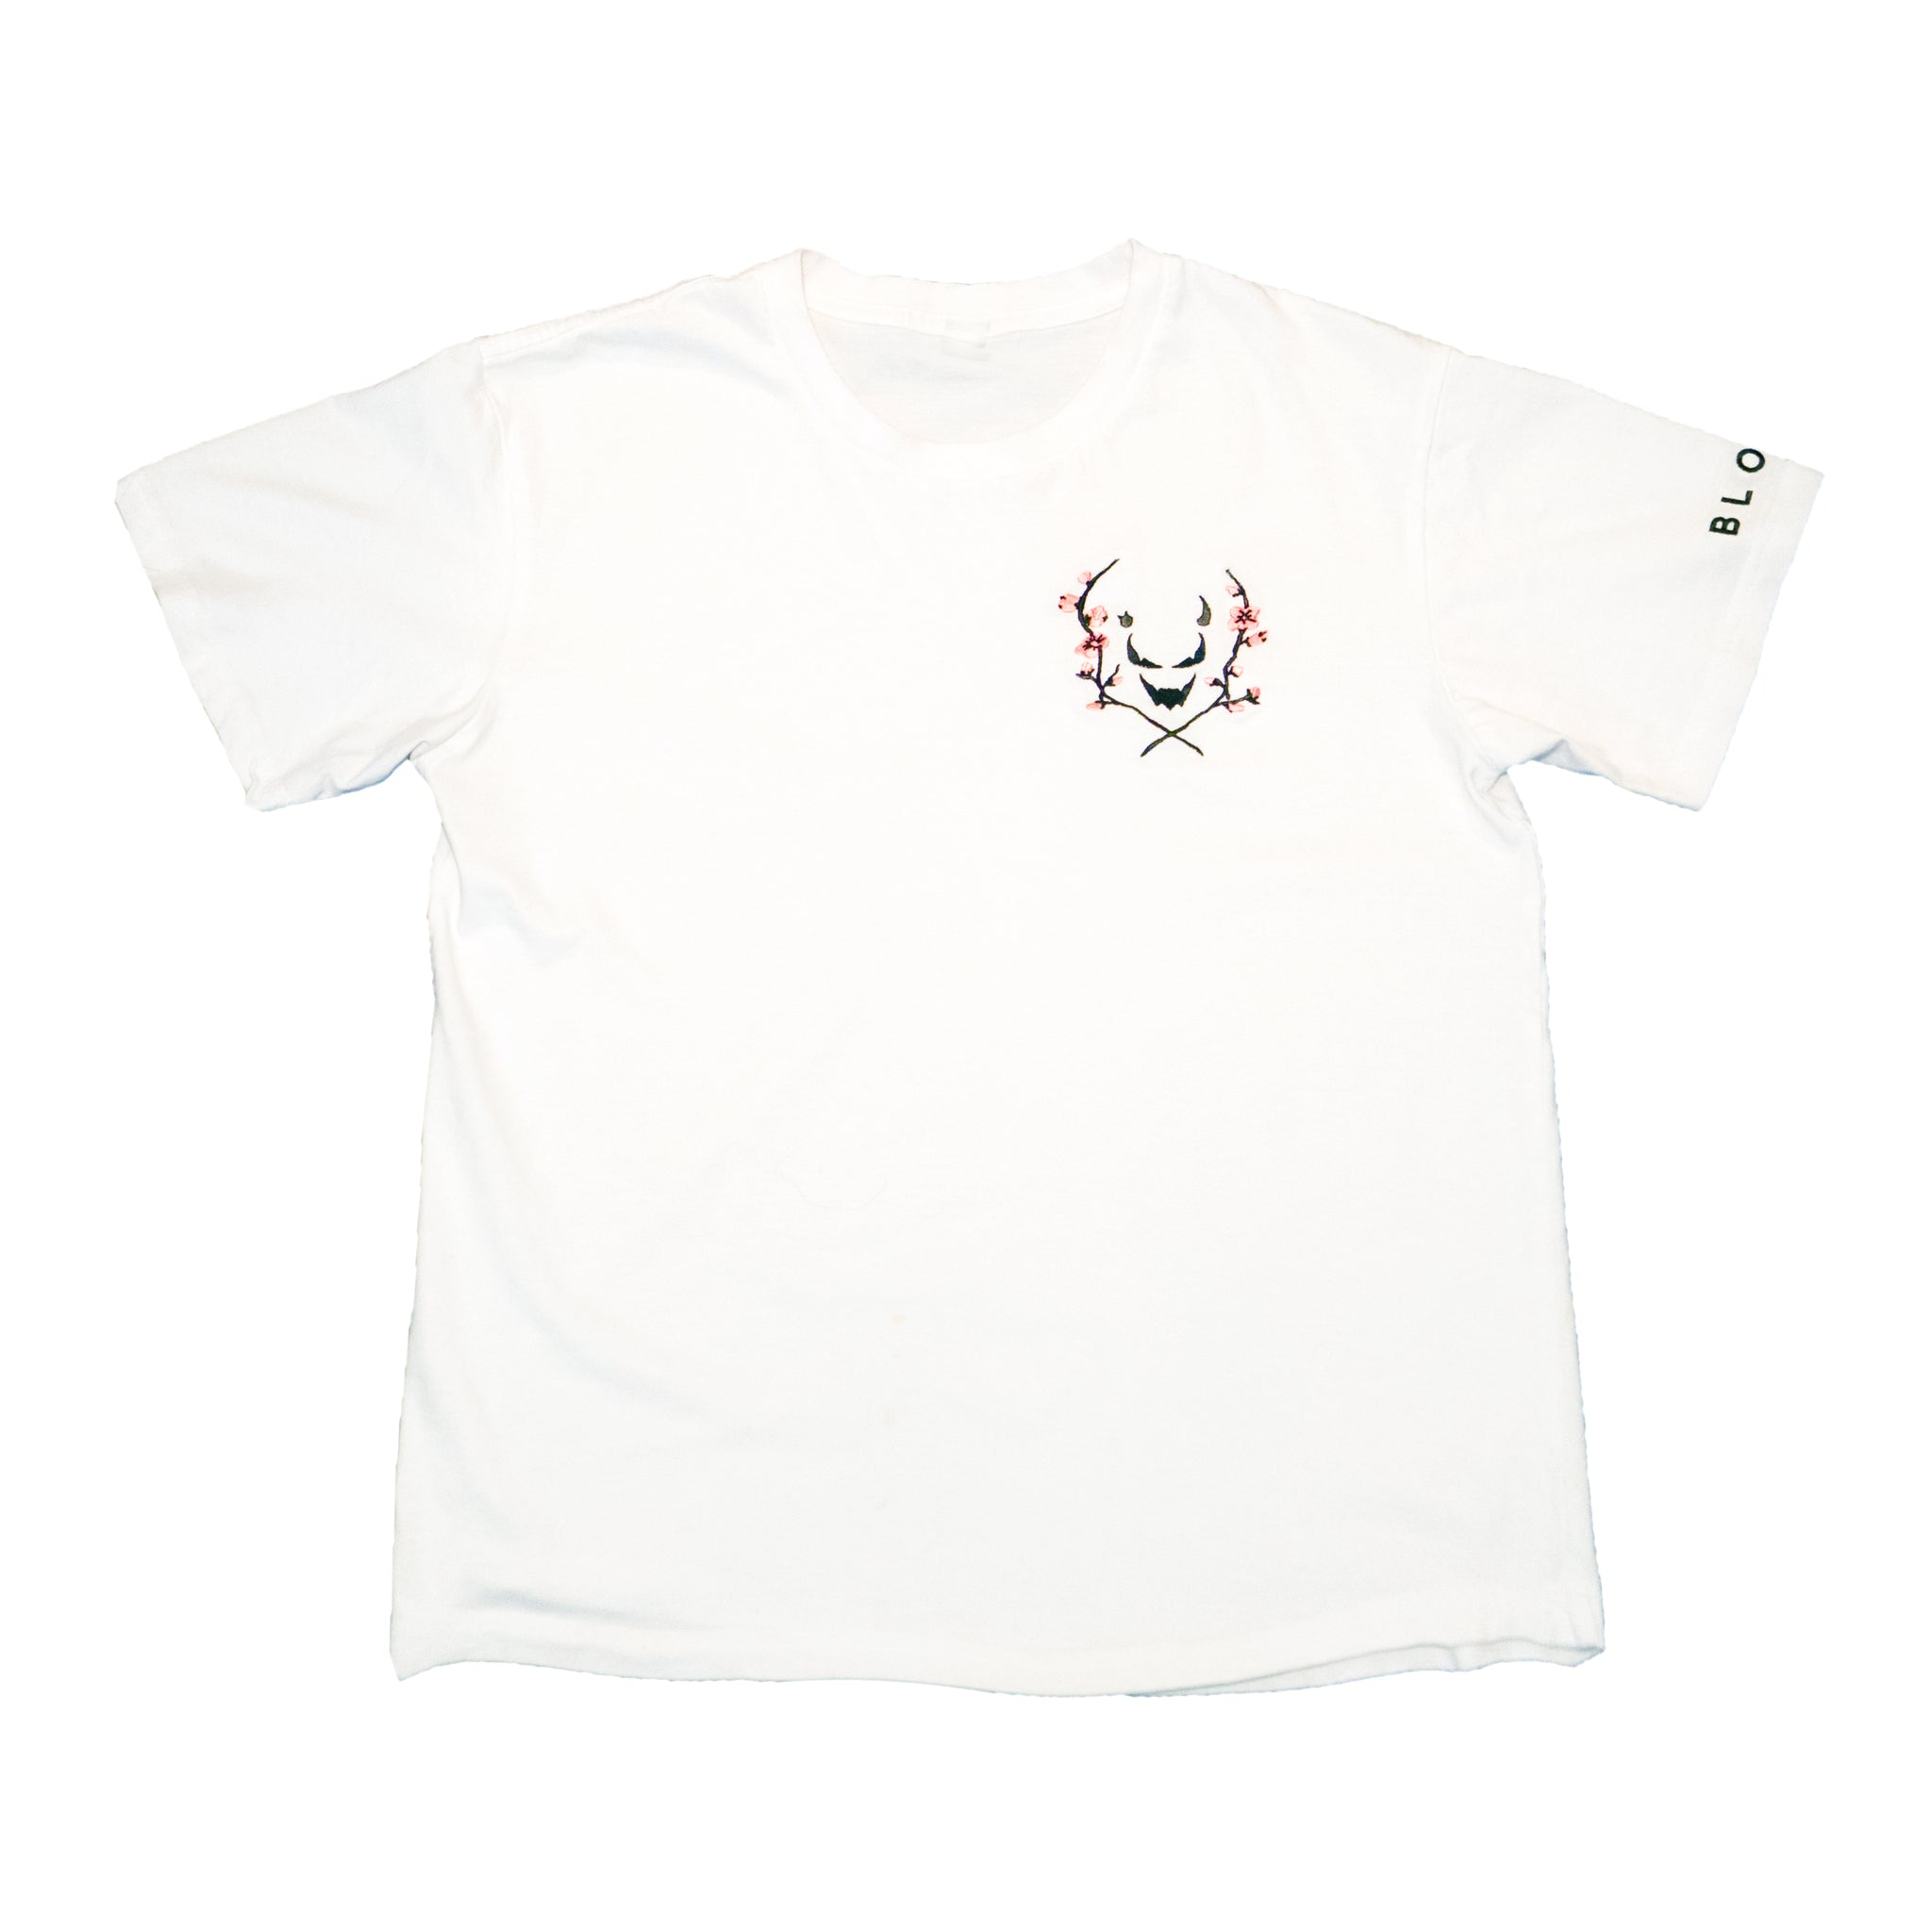 'BLOOM' Tee [Regular Fit] (White)